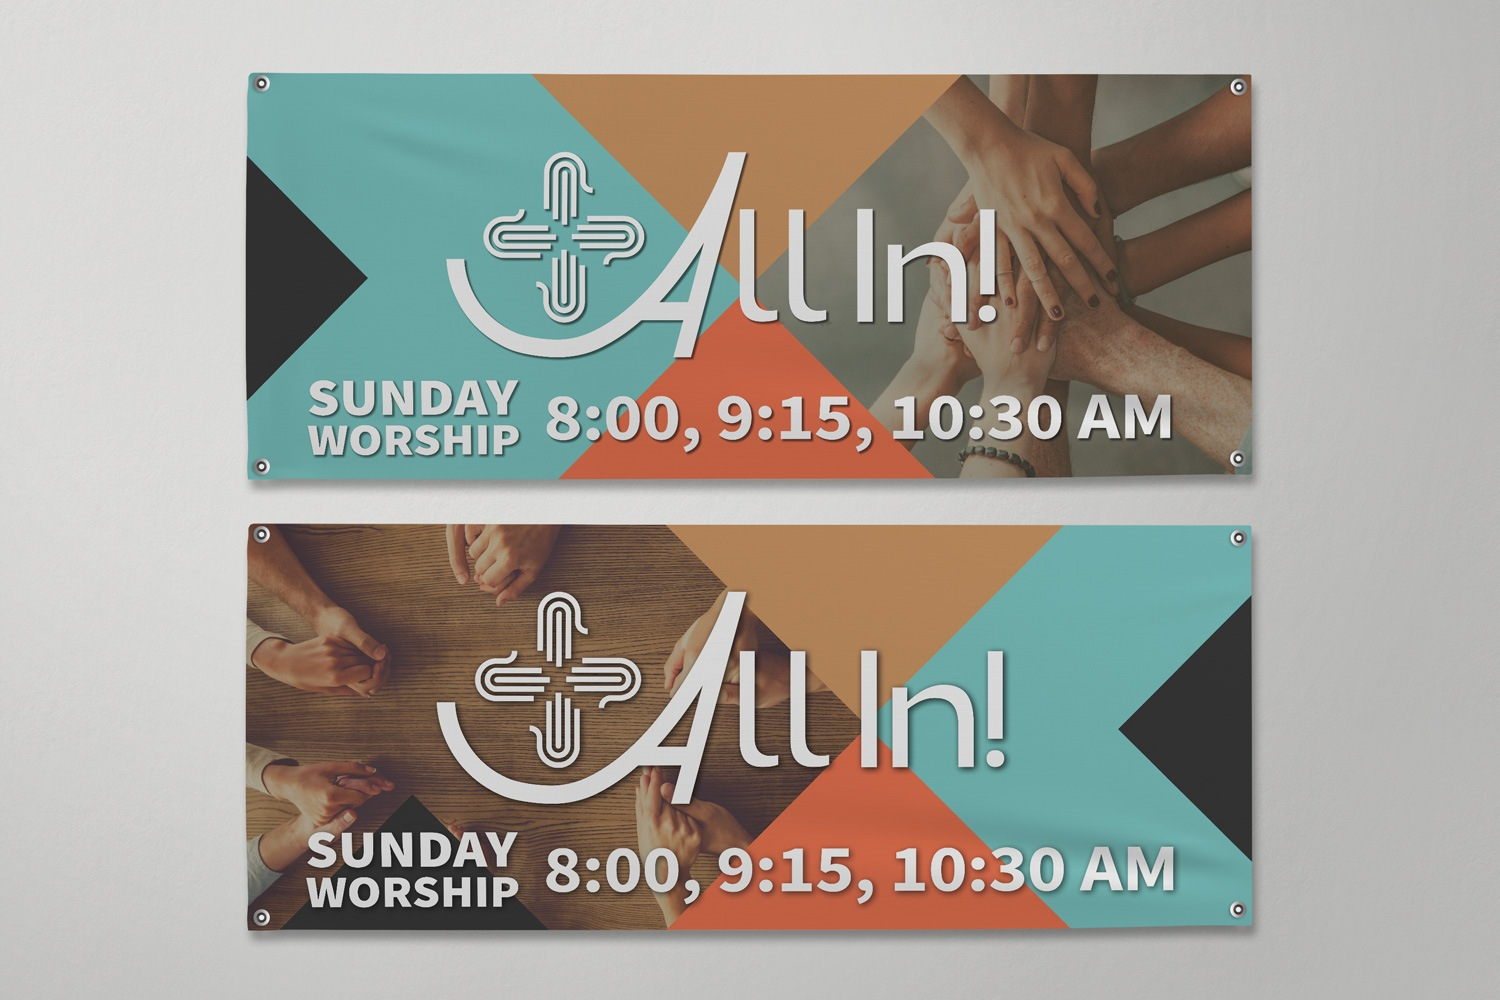 Outdoor church banners for church capital campaigns examples by Abstract Union in Lincoln, NE